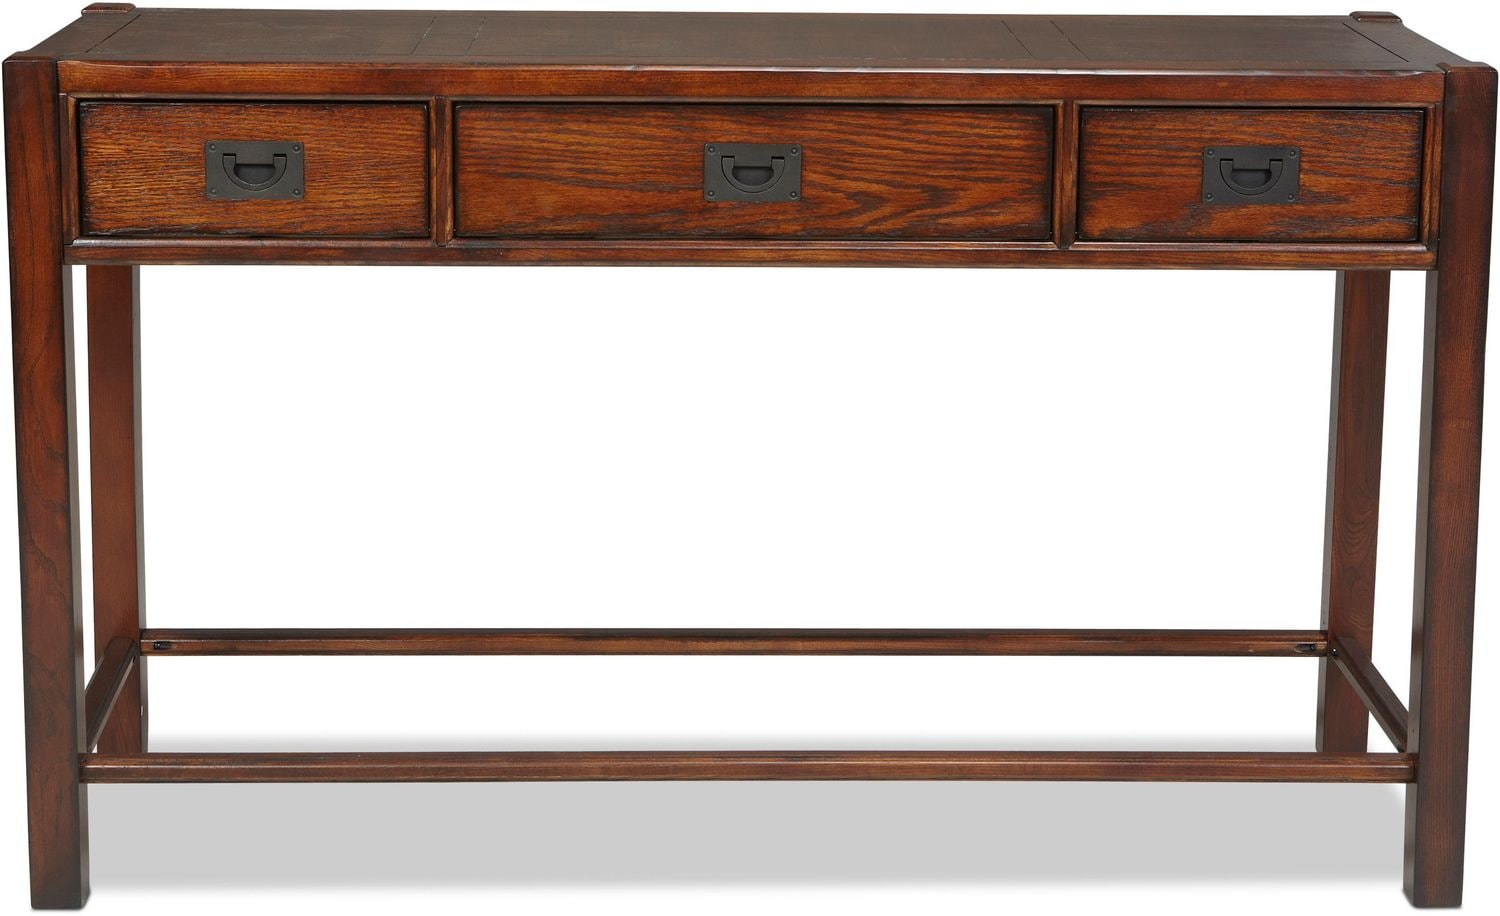 Accent and Occasional Furniture - Sumpter Sofa Table - Distressed Chestnut